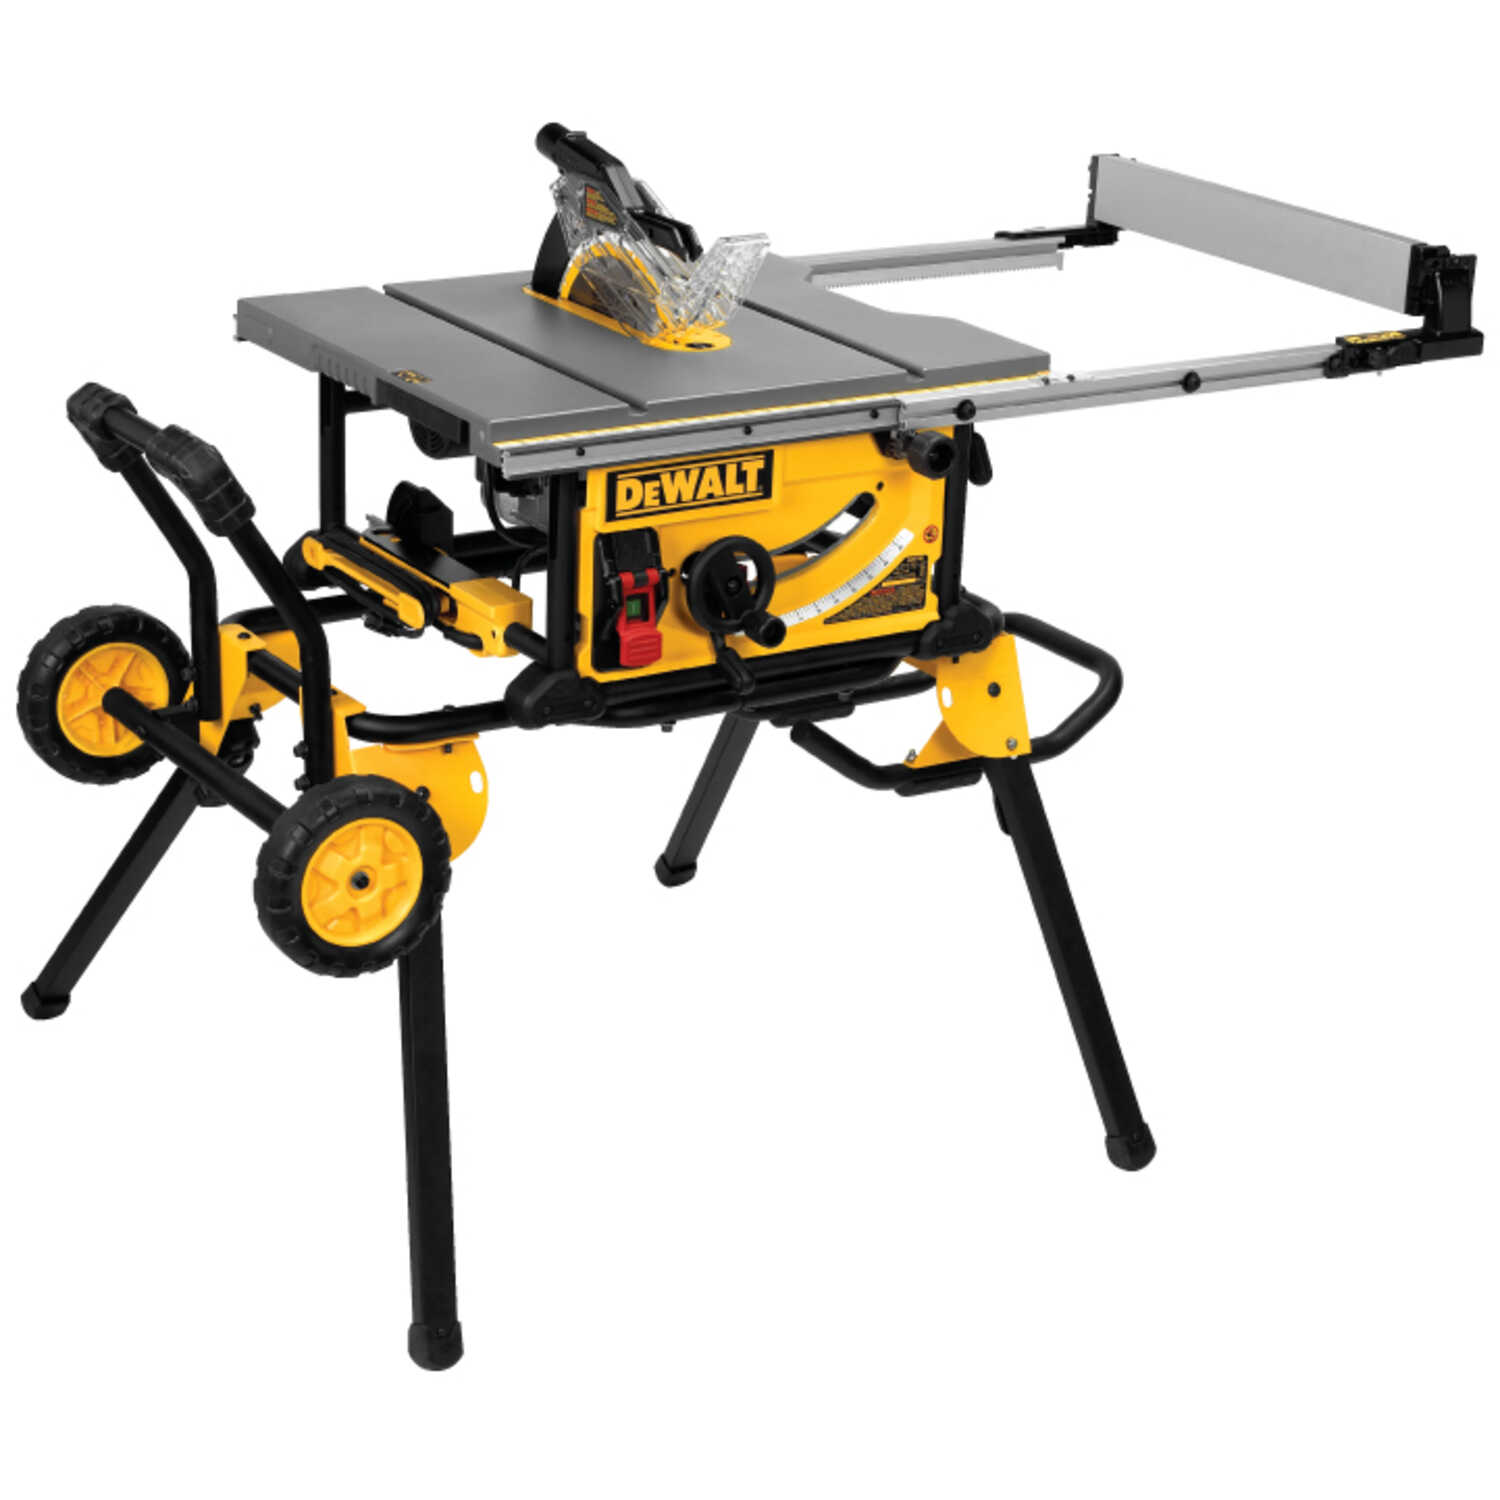 DeWalt  10 in. Corded  Table Saw with Stand  15 amps 4800 rpm